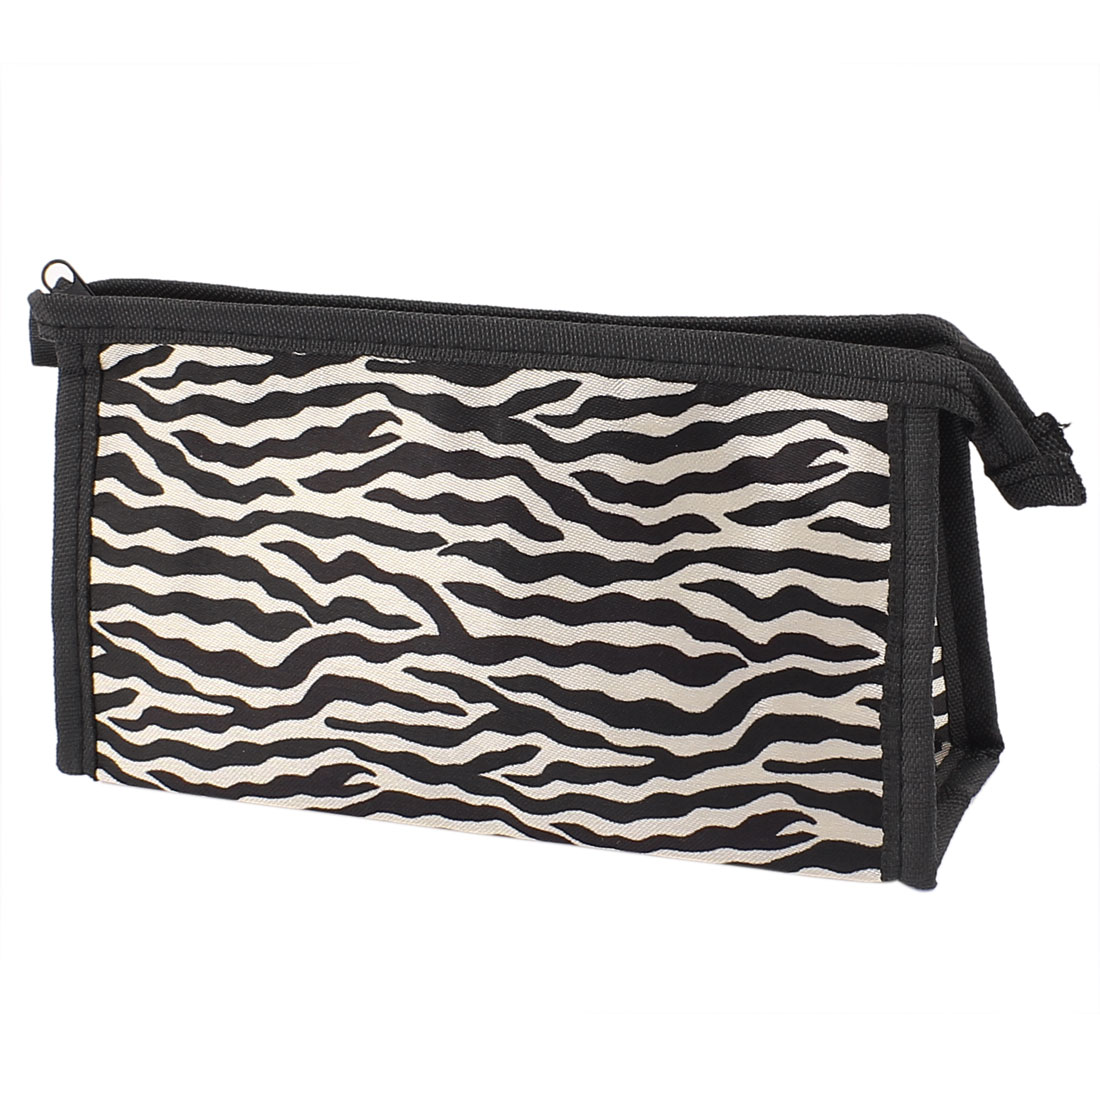 Lady Zebra Pattern Zipper Makeup Cosmetic Organizer Bag Black Gray